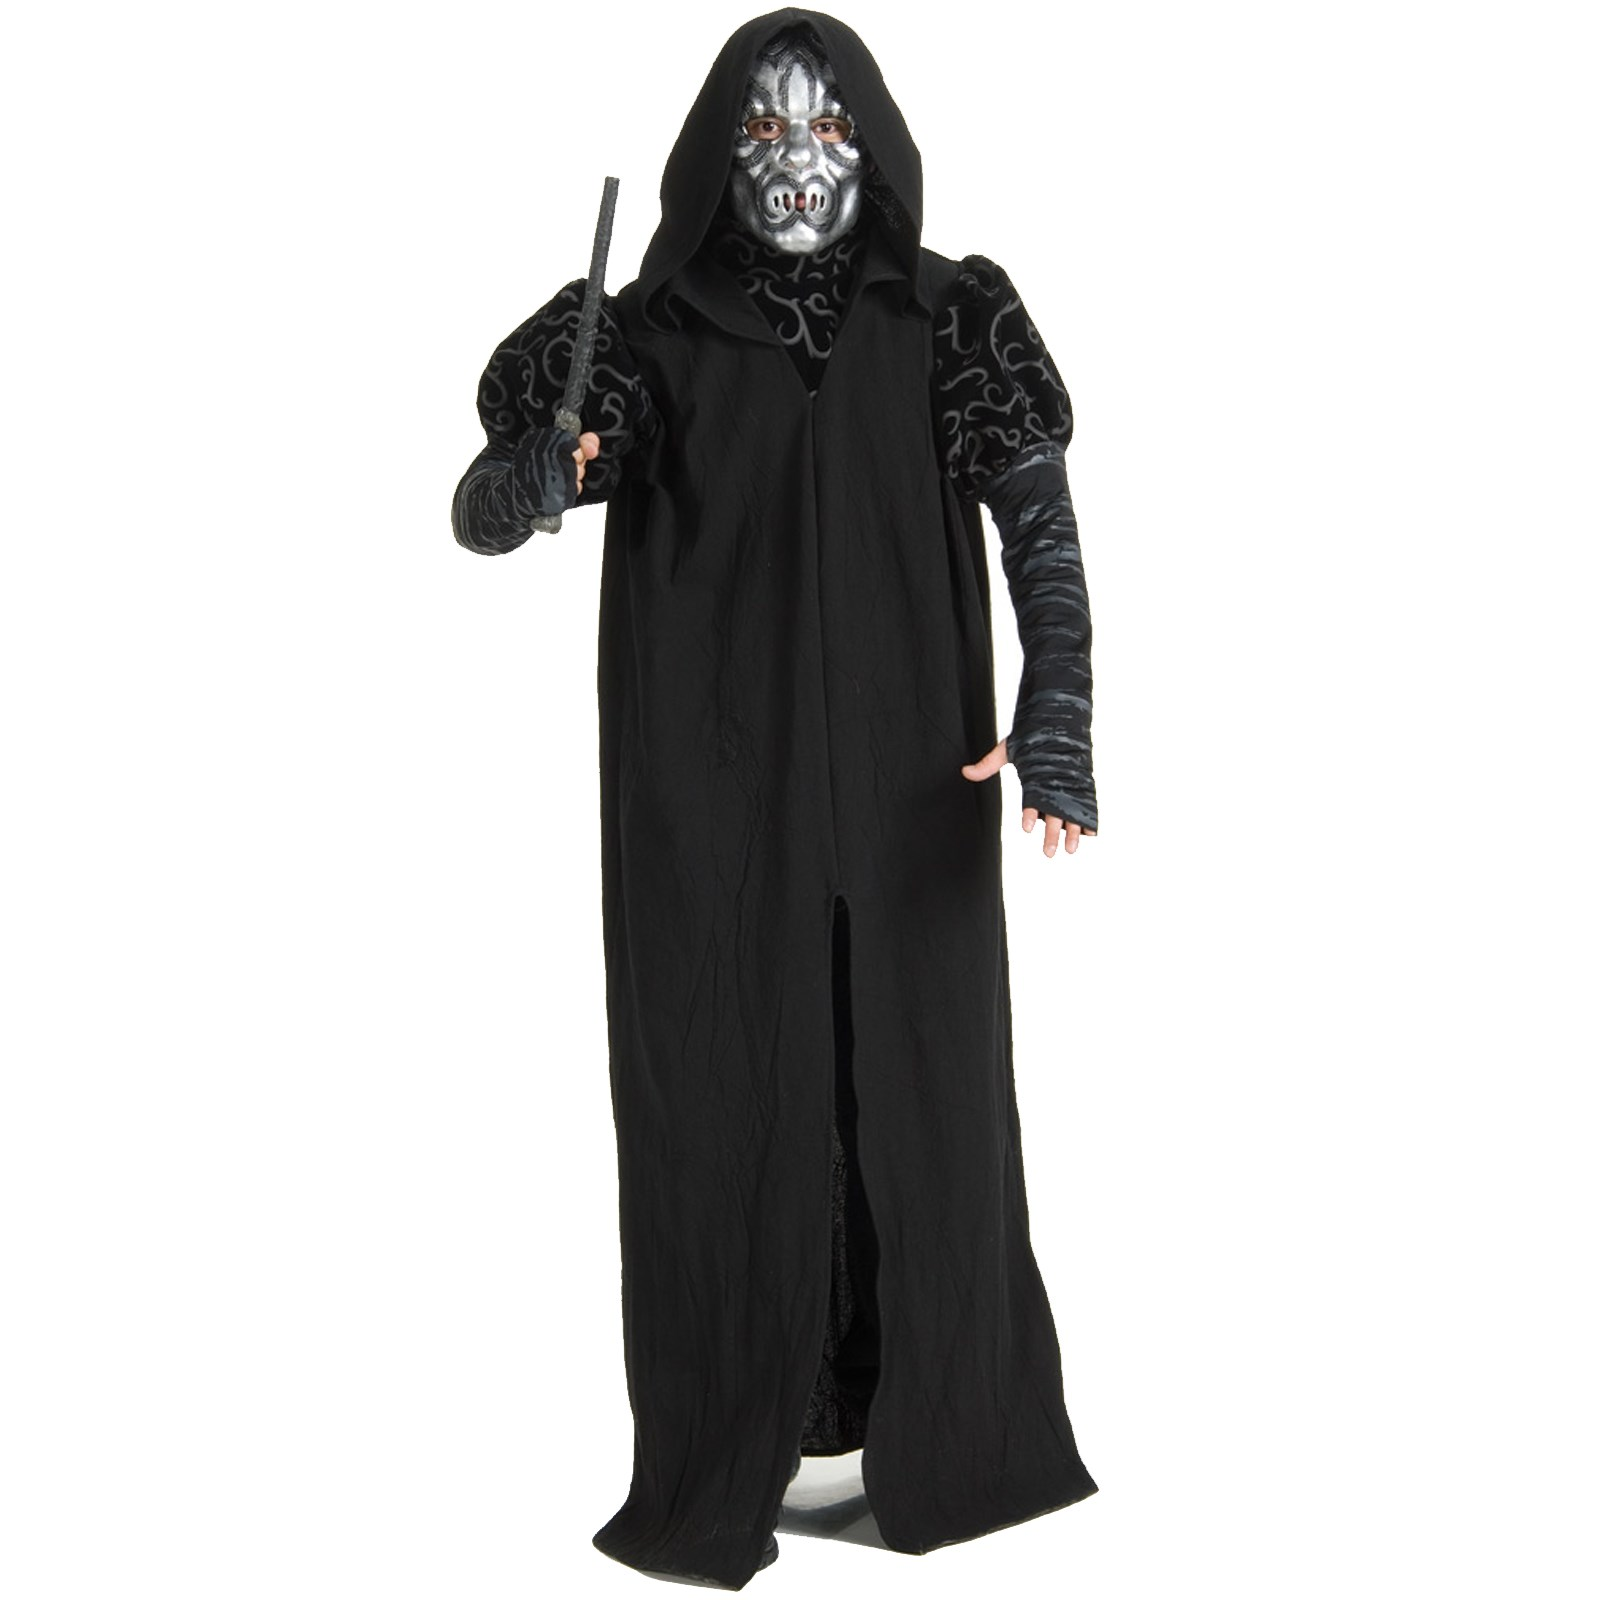 Harry Potter - Death Eater Deluxe Adult Costume